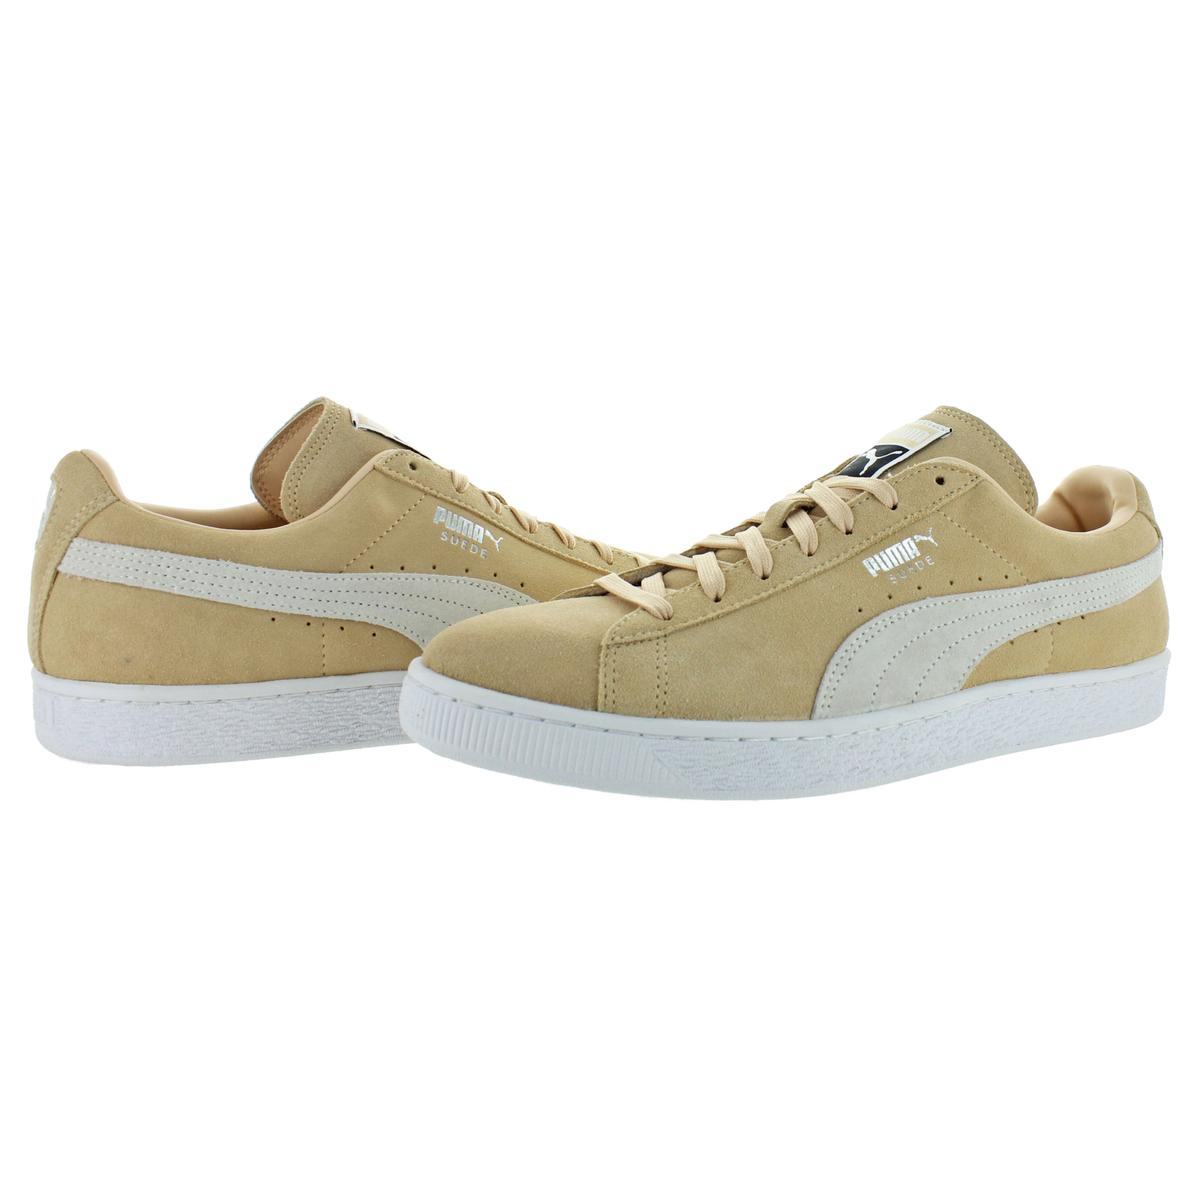 Puma-Suede-Classic-Men-039-s-Fashion-Sneakers-Shoes thumbnail 25